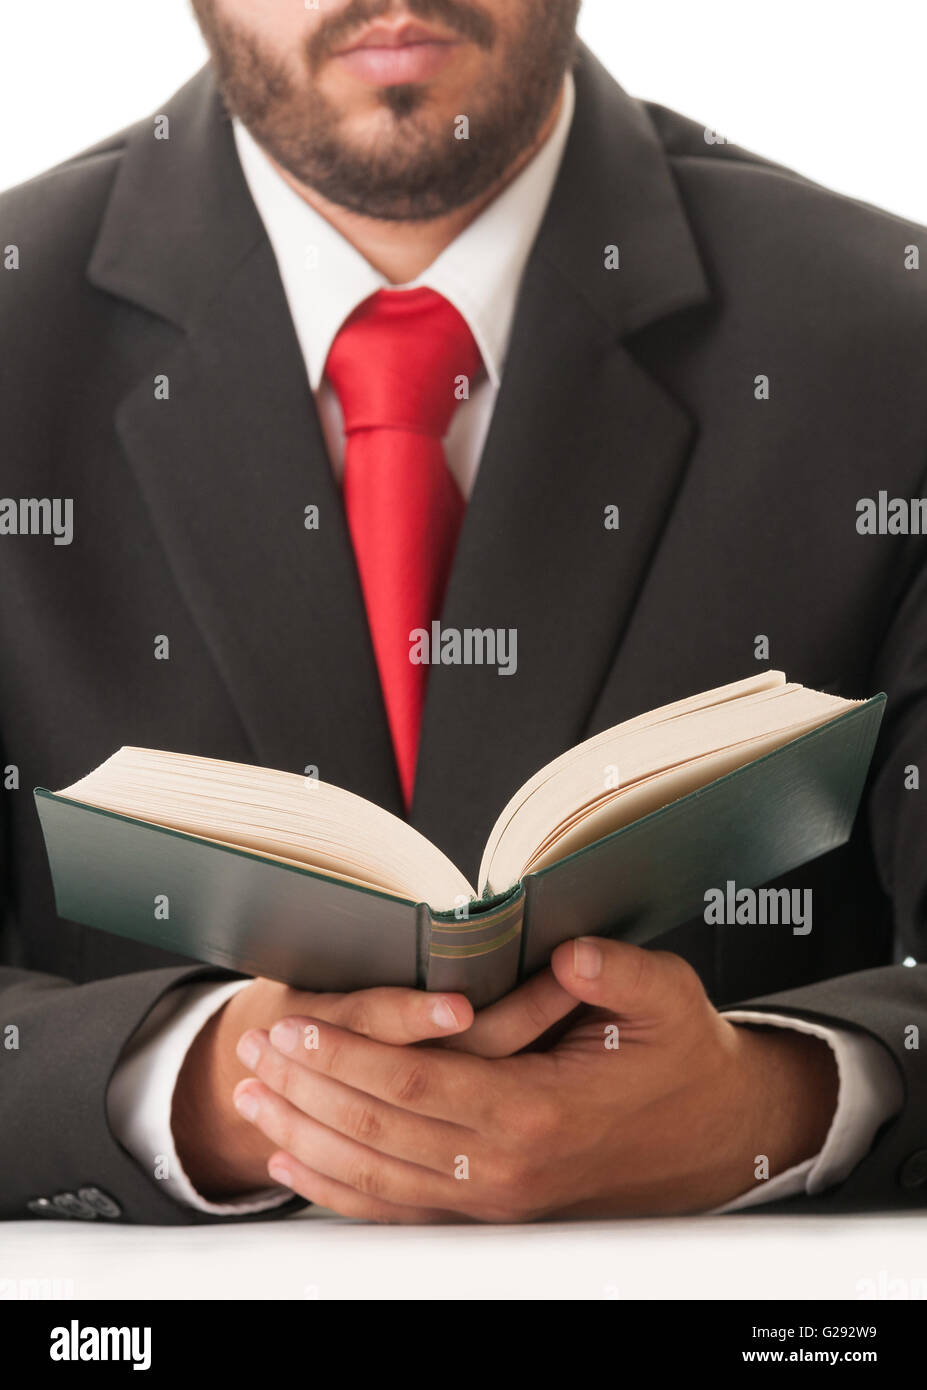 Lawyer dress with black suit and red tie reading book of laws - Stock Image